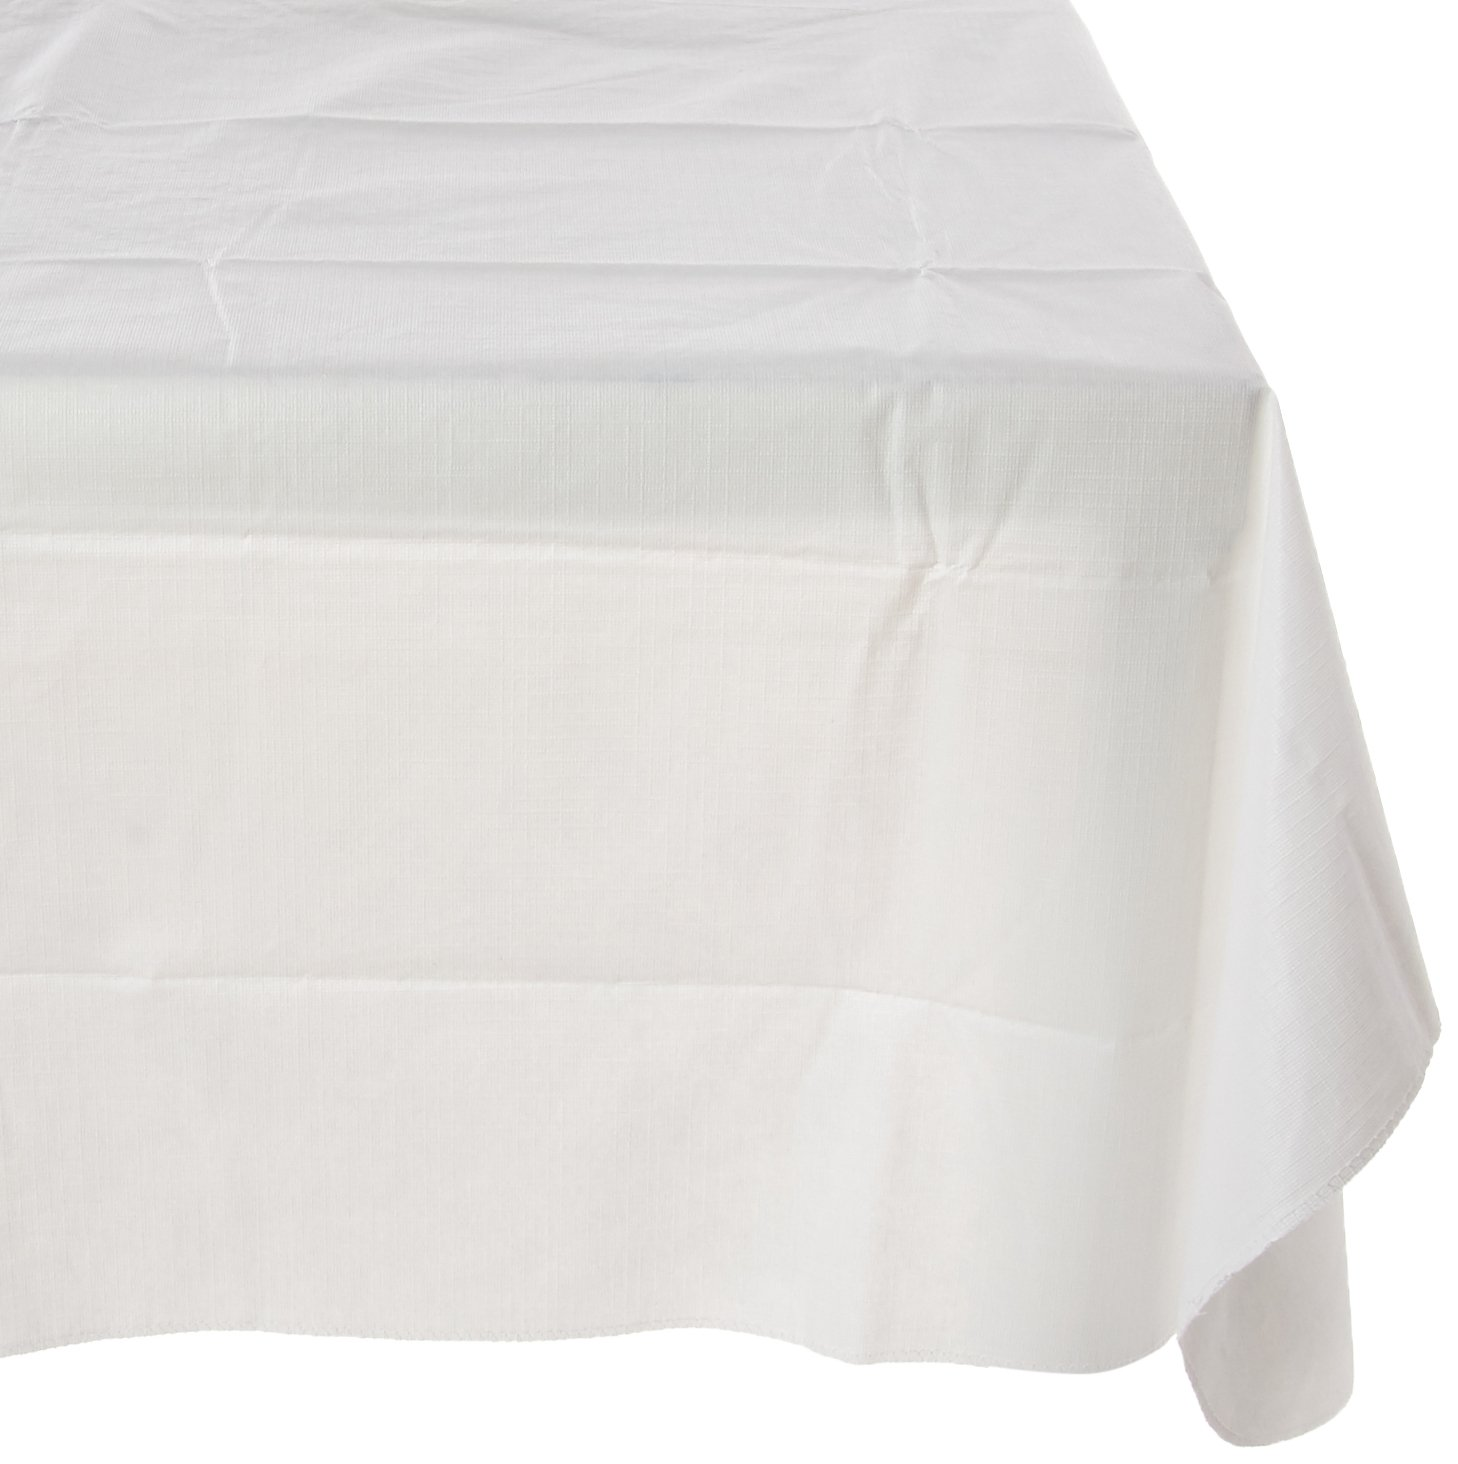 Amscan White Flannel-Backed Vinyl Table Cover | Party Tableware, 6 Ct.